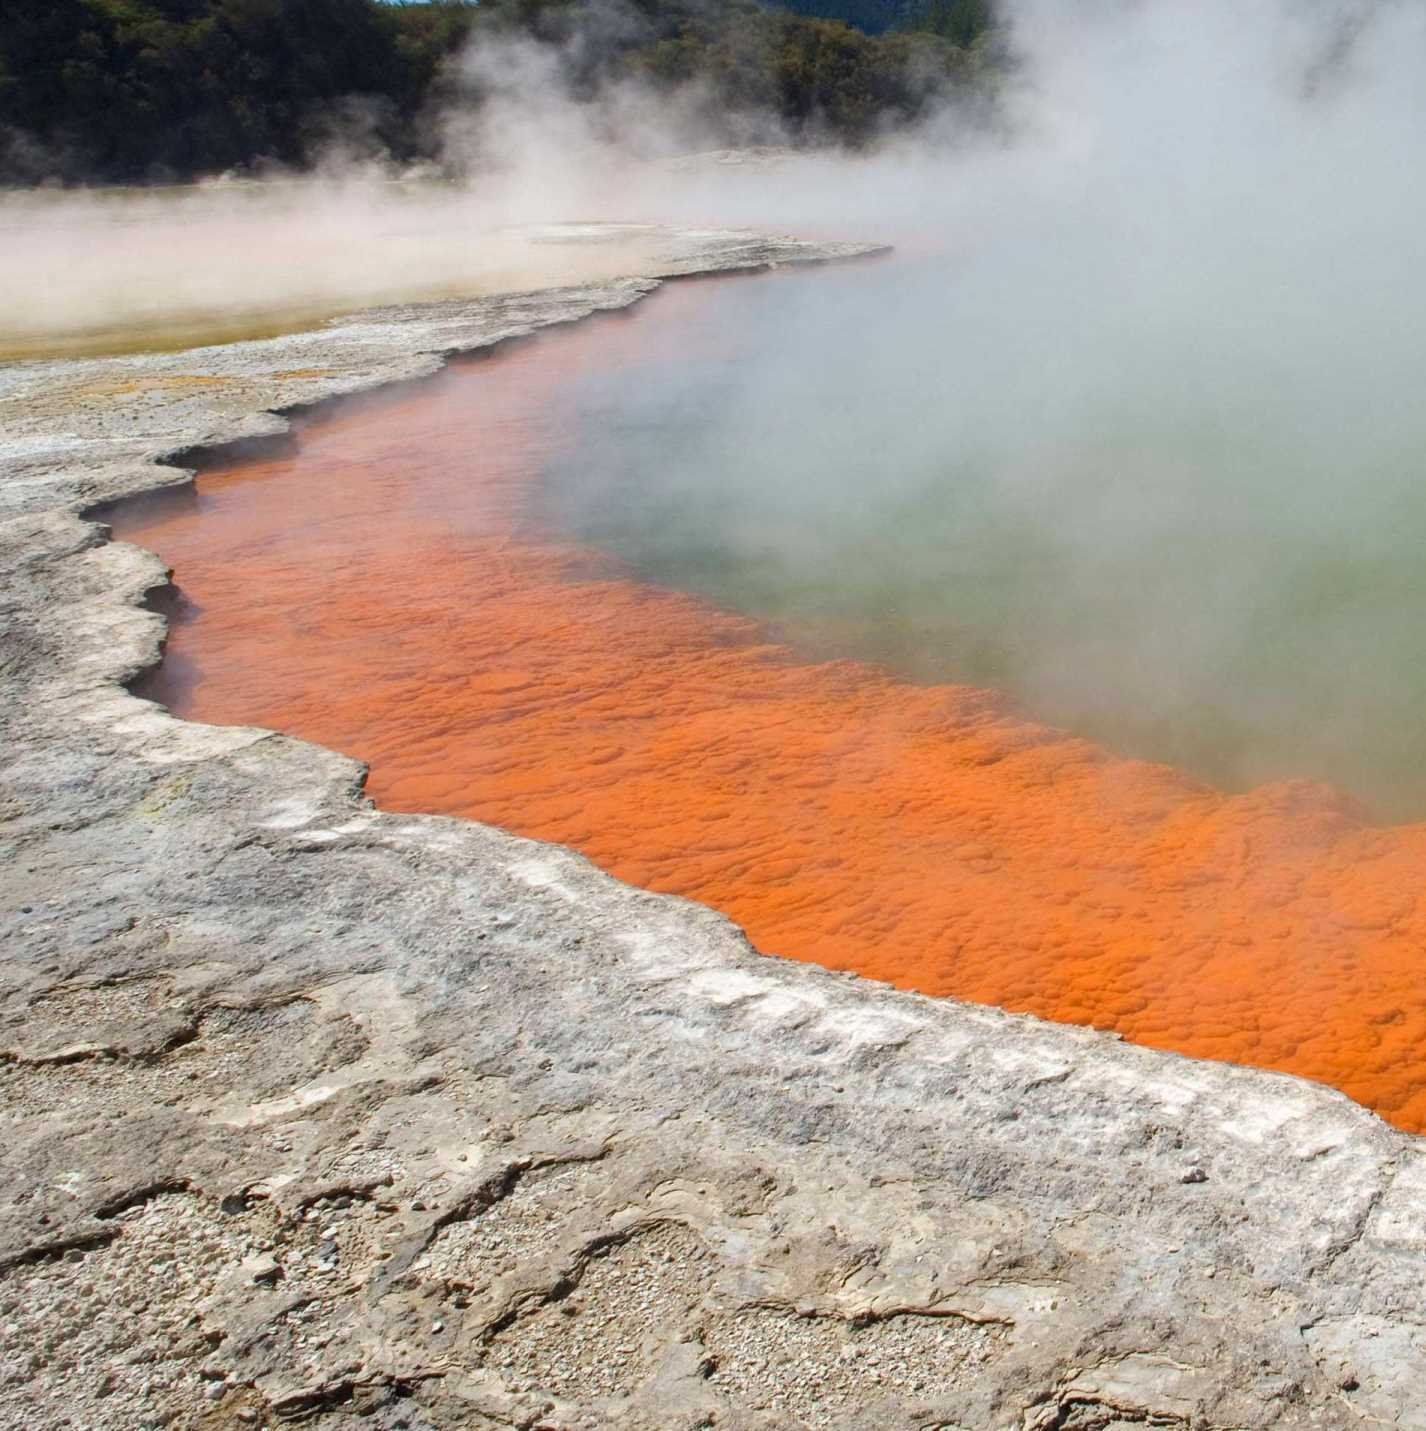 Champagne Pool at Waiotapu. The orange precipitate on the subaqueous sinter shelf is a combination of crystalline and amorphous arsenic and antimony sulphides, sulphur and microorganisms.